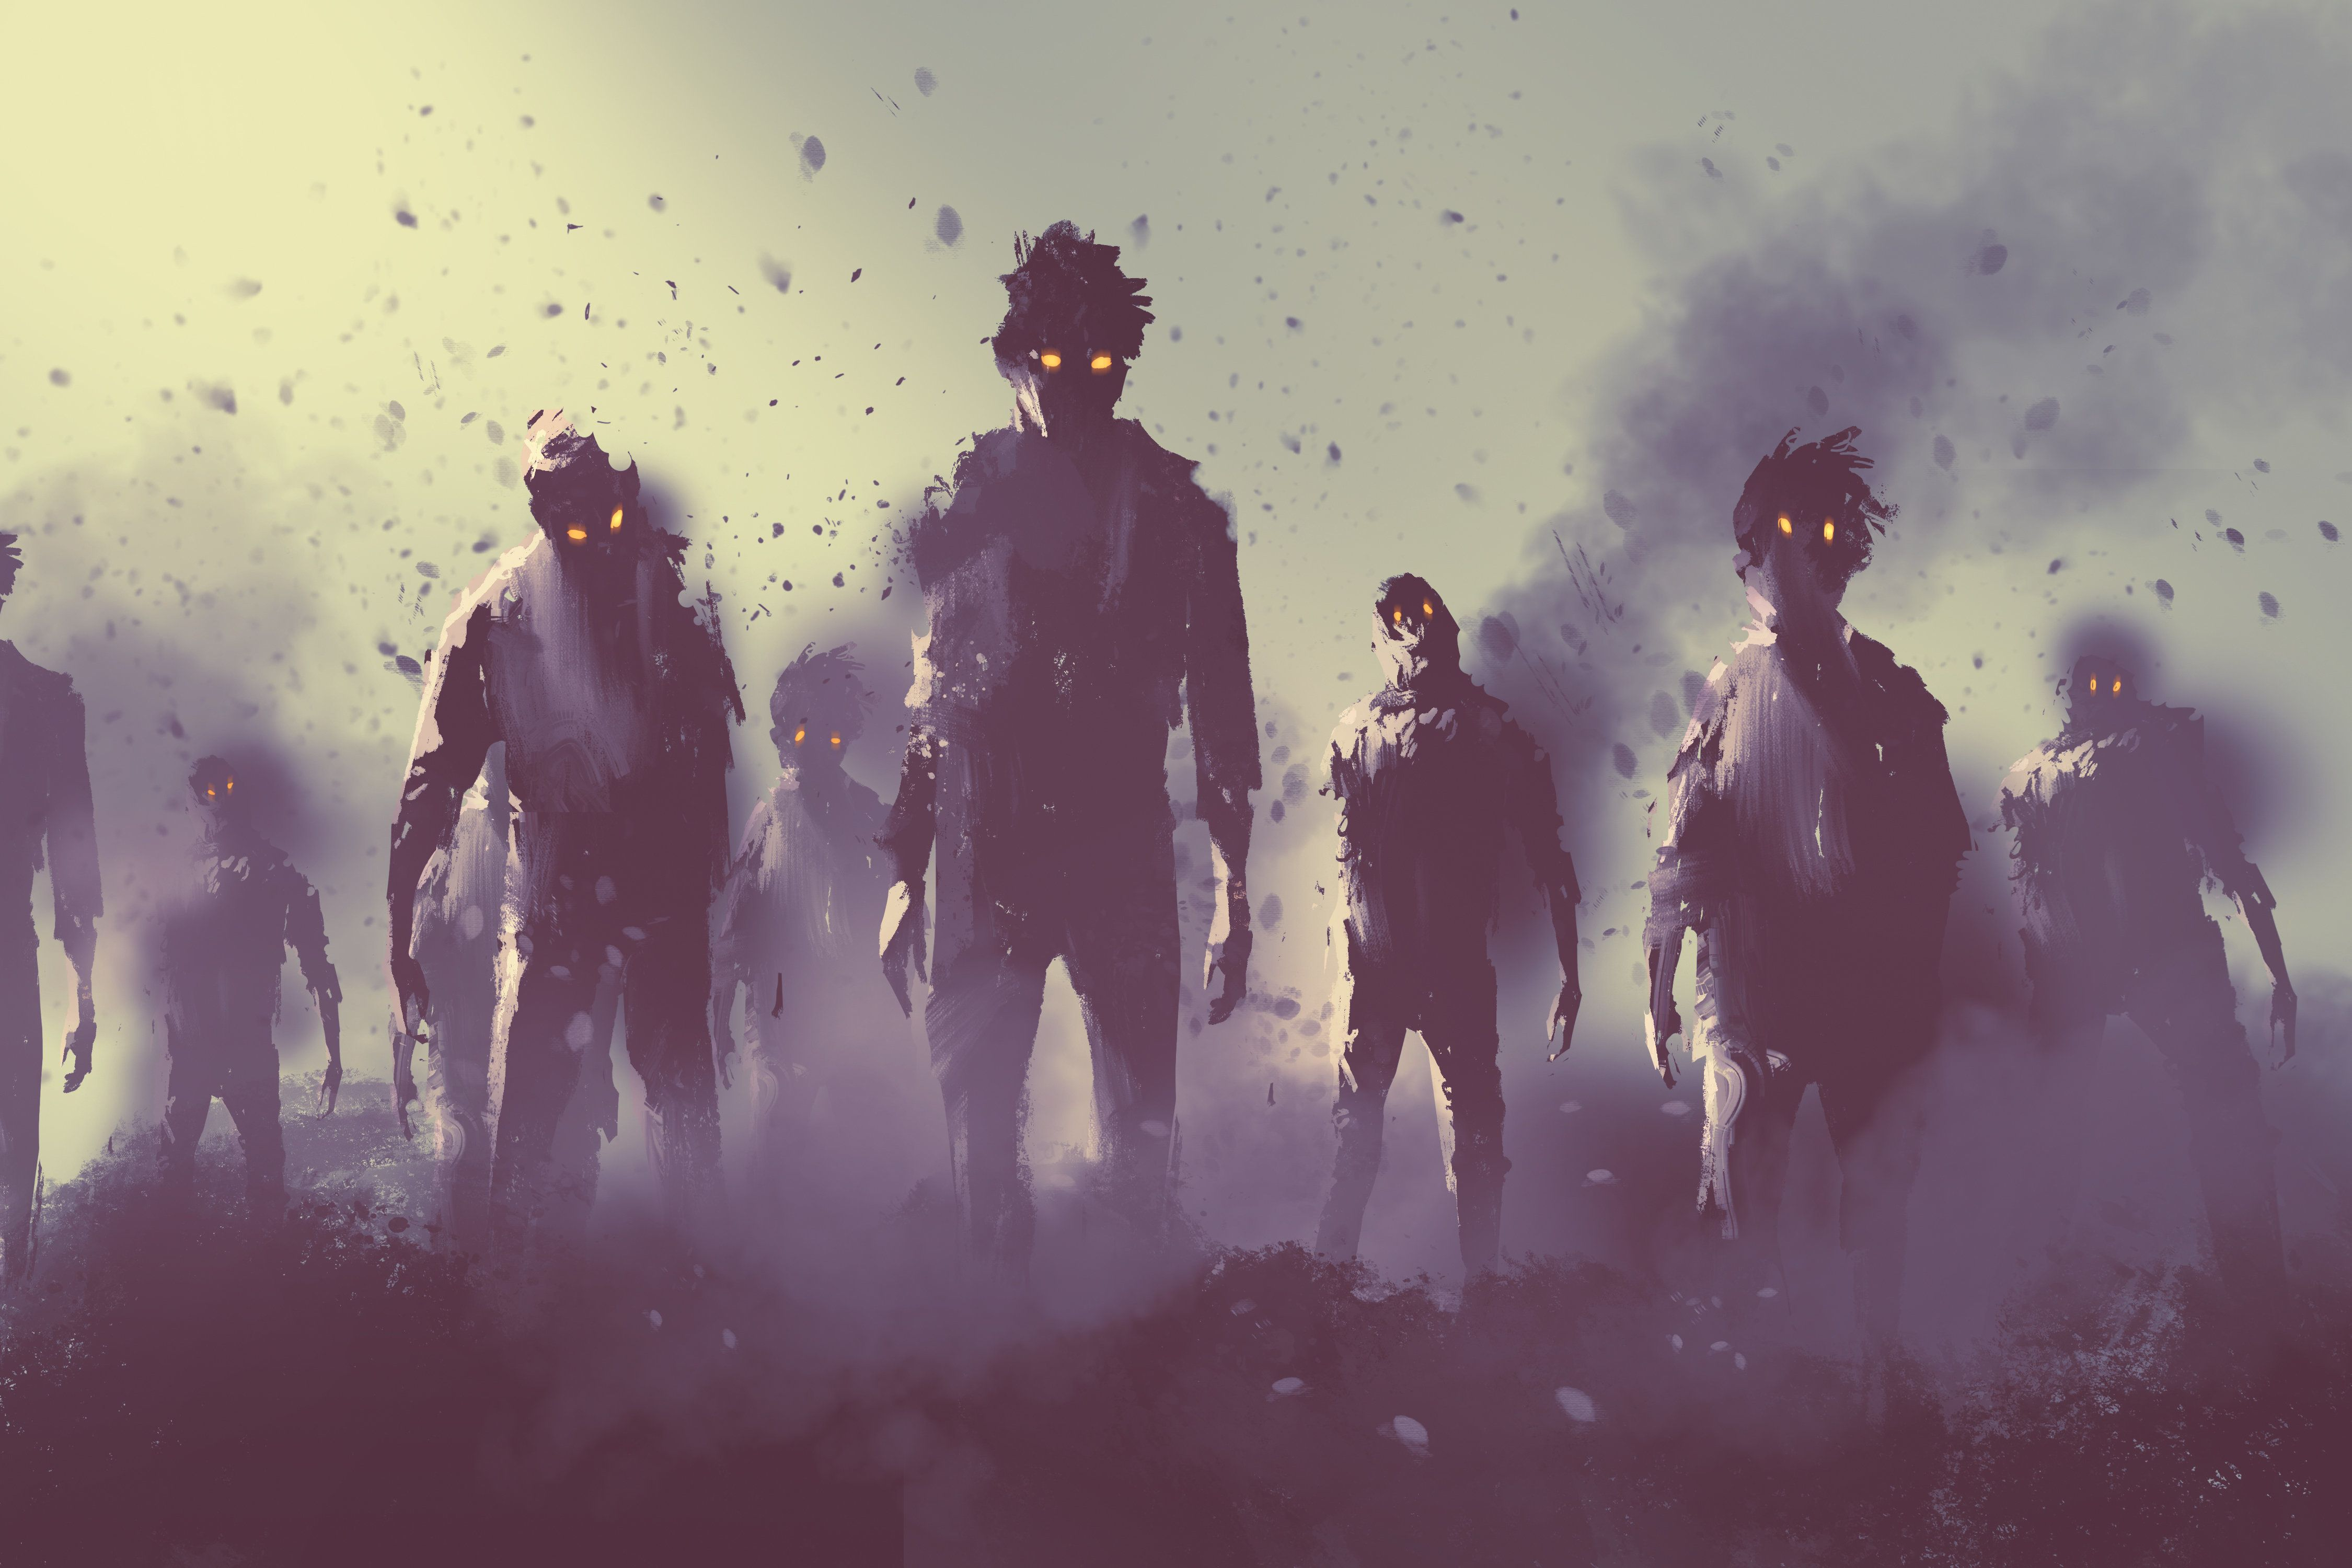 A Zombie Infection Would Need Just 100 Days To Almost Completely Destroy